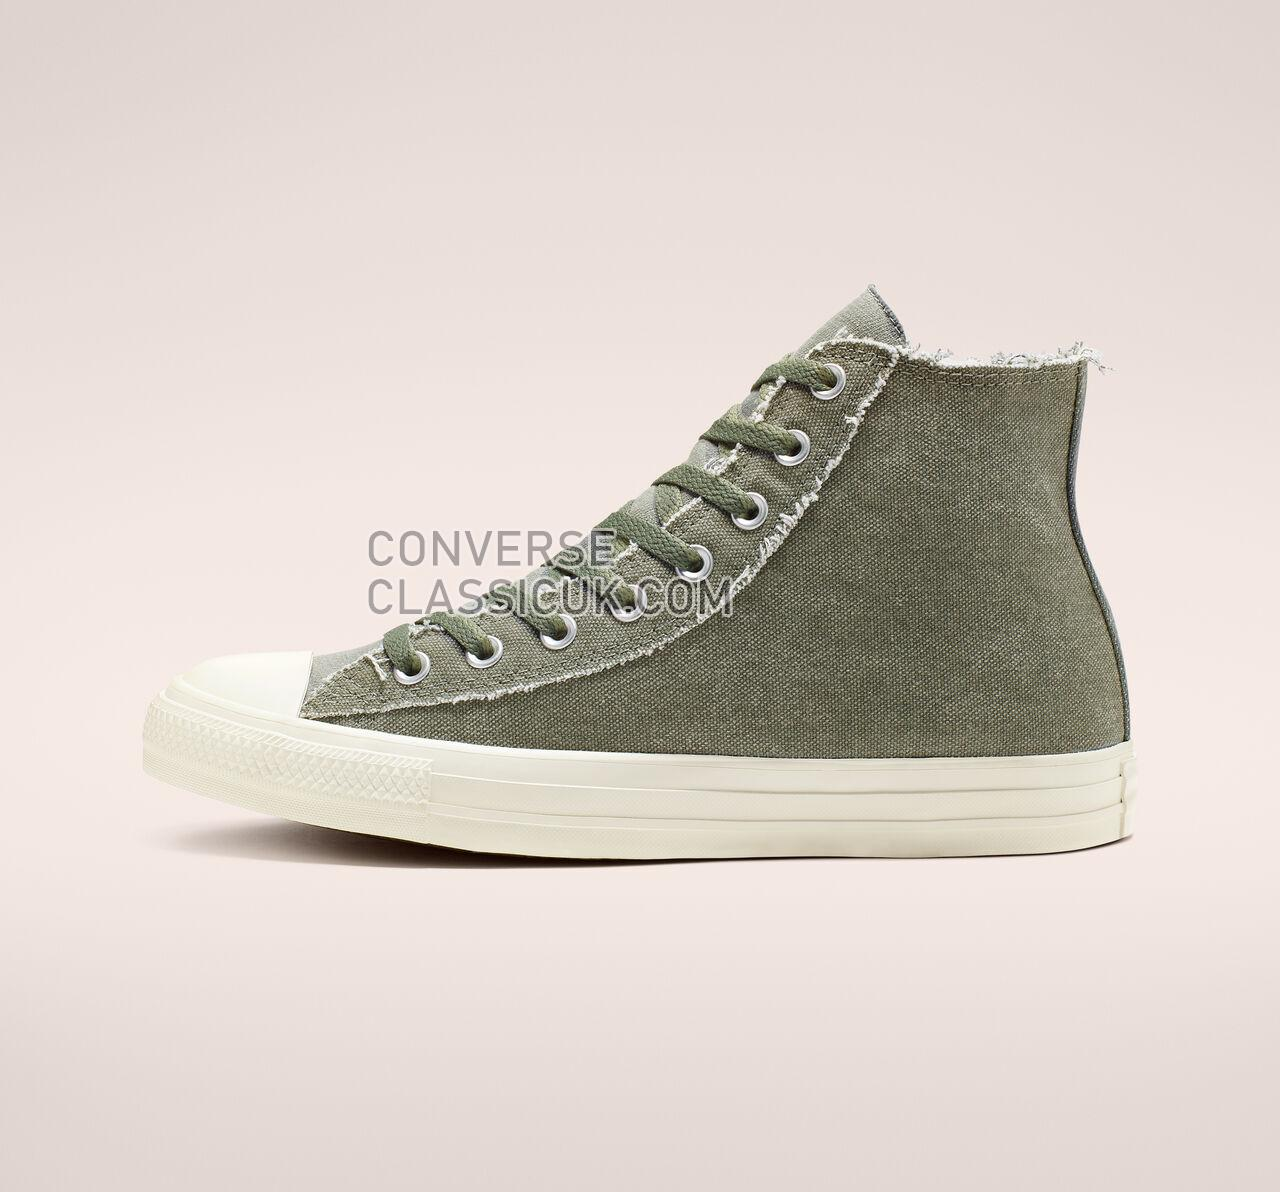 Converse Chuck Taylor All Star Washed Out High Top Mens Womens Unisex 164096F Vintage Lichen/Egret/Egret Shoes